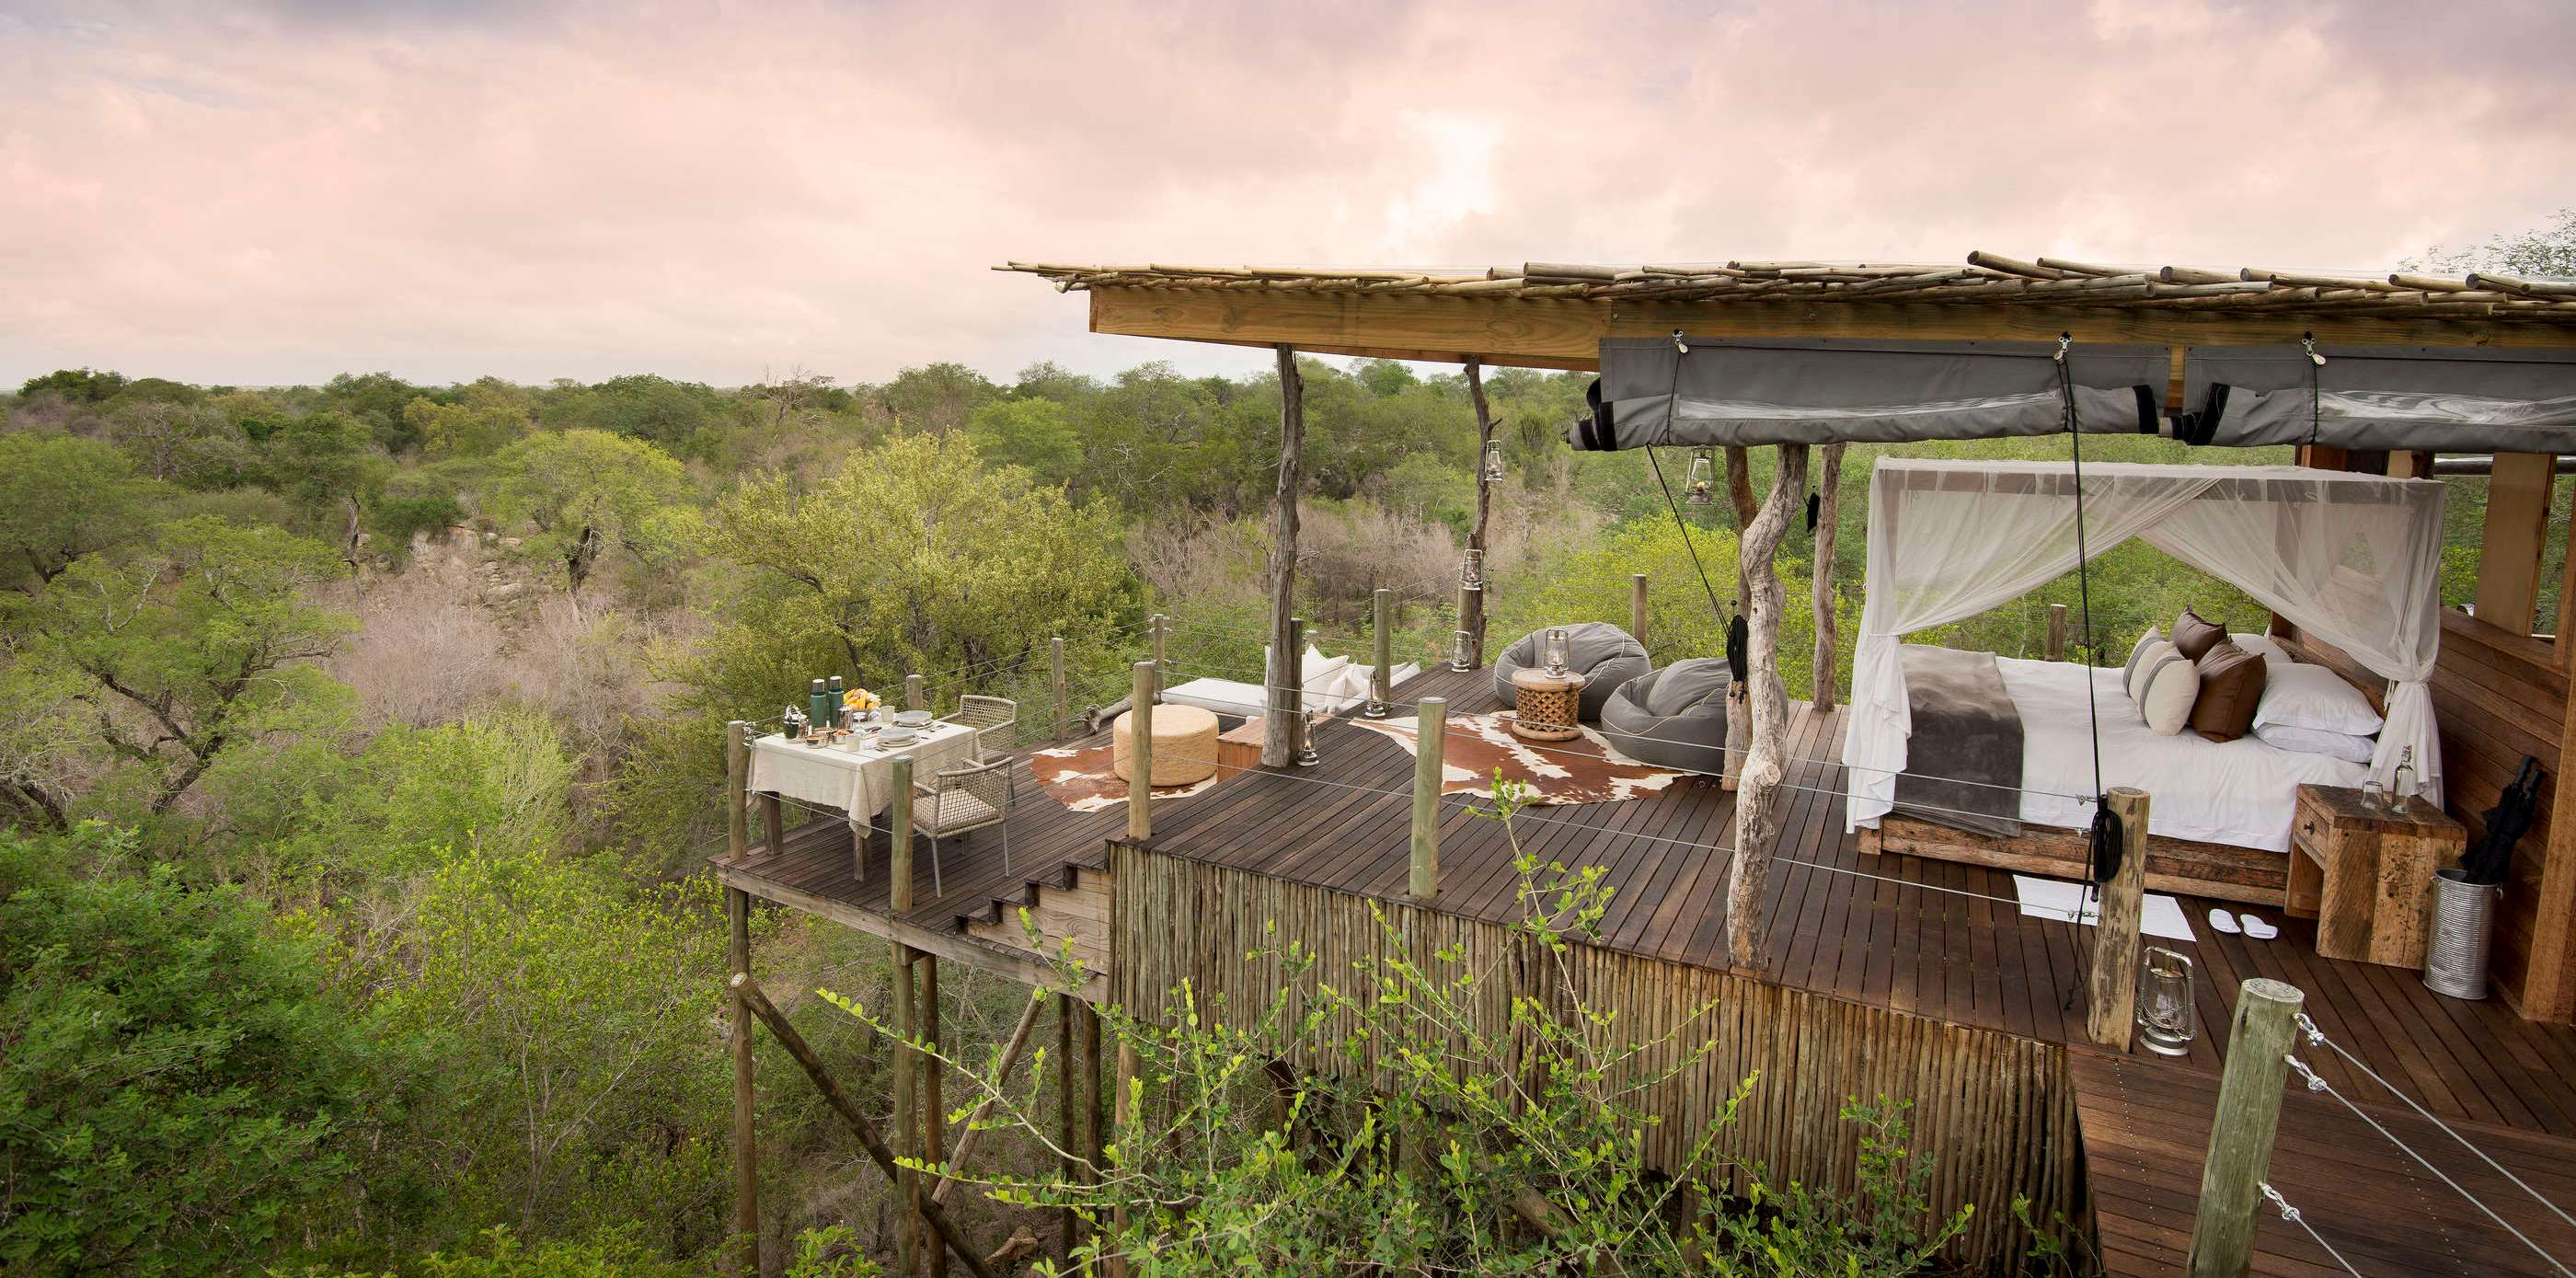 The World's 10 Coolest Treehouse Hotels